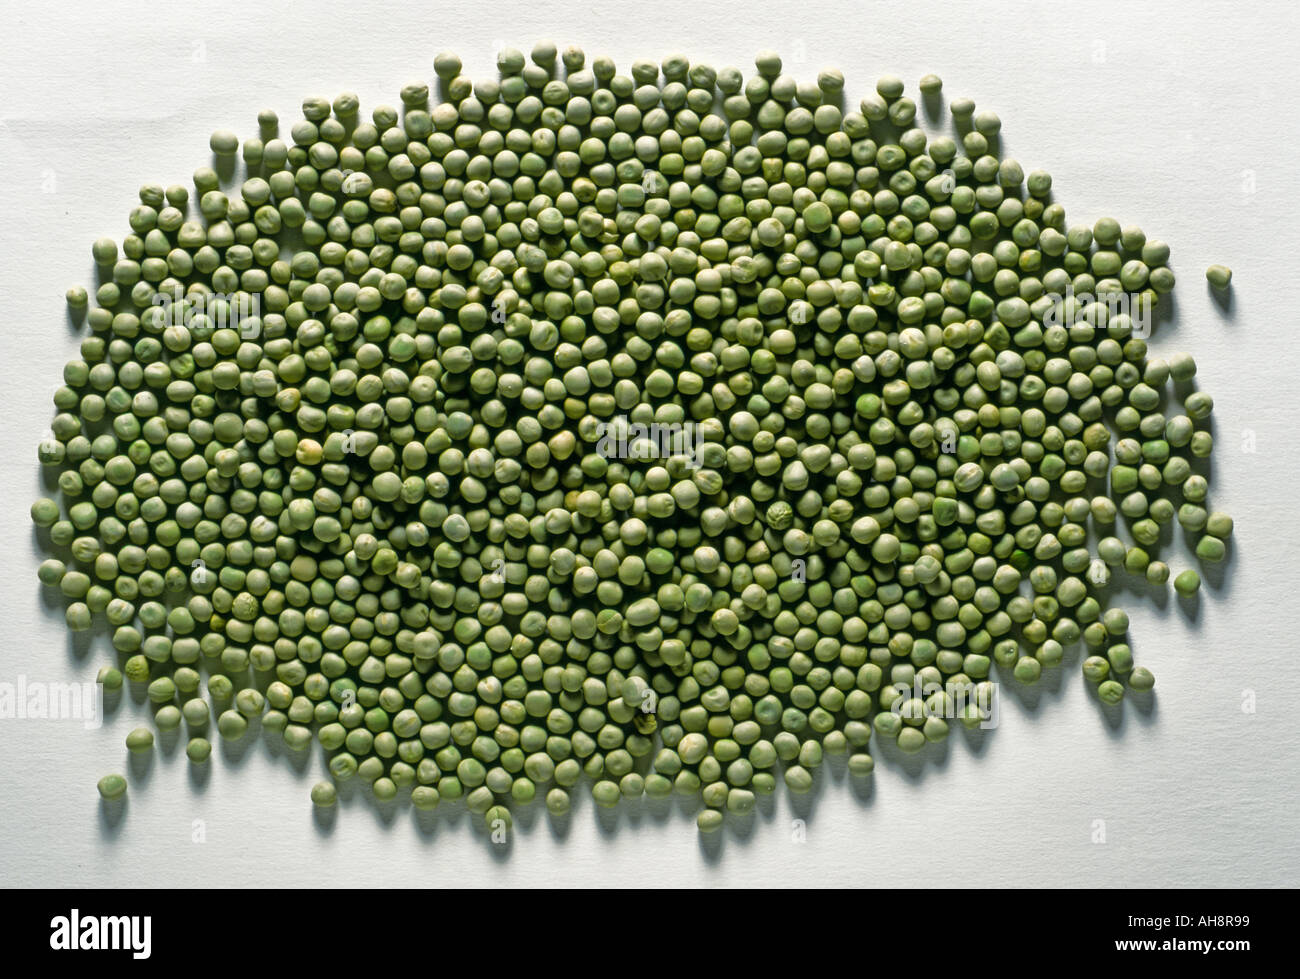 AAD71623 Food vegetable healthy nutricious dried green peas pisum sativum on white background doublespread studioshot - Stock Image